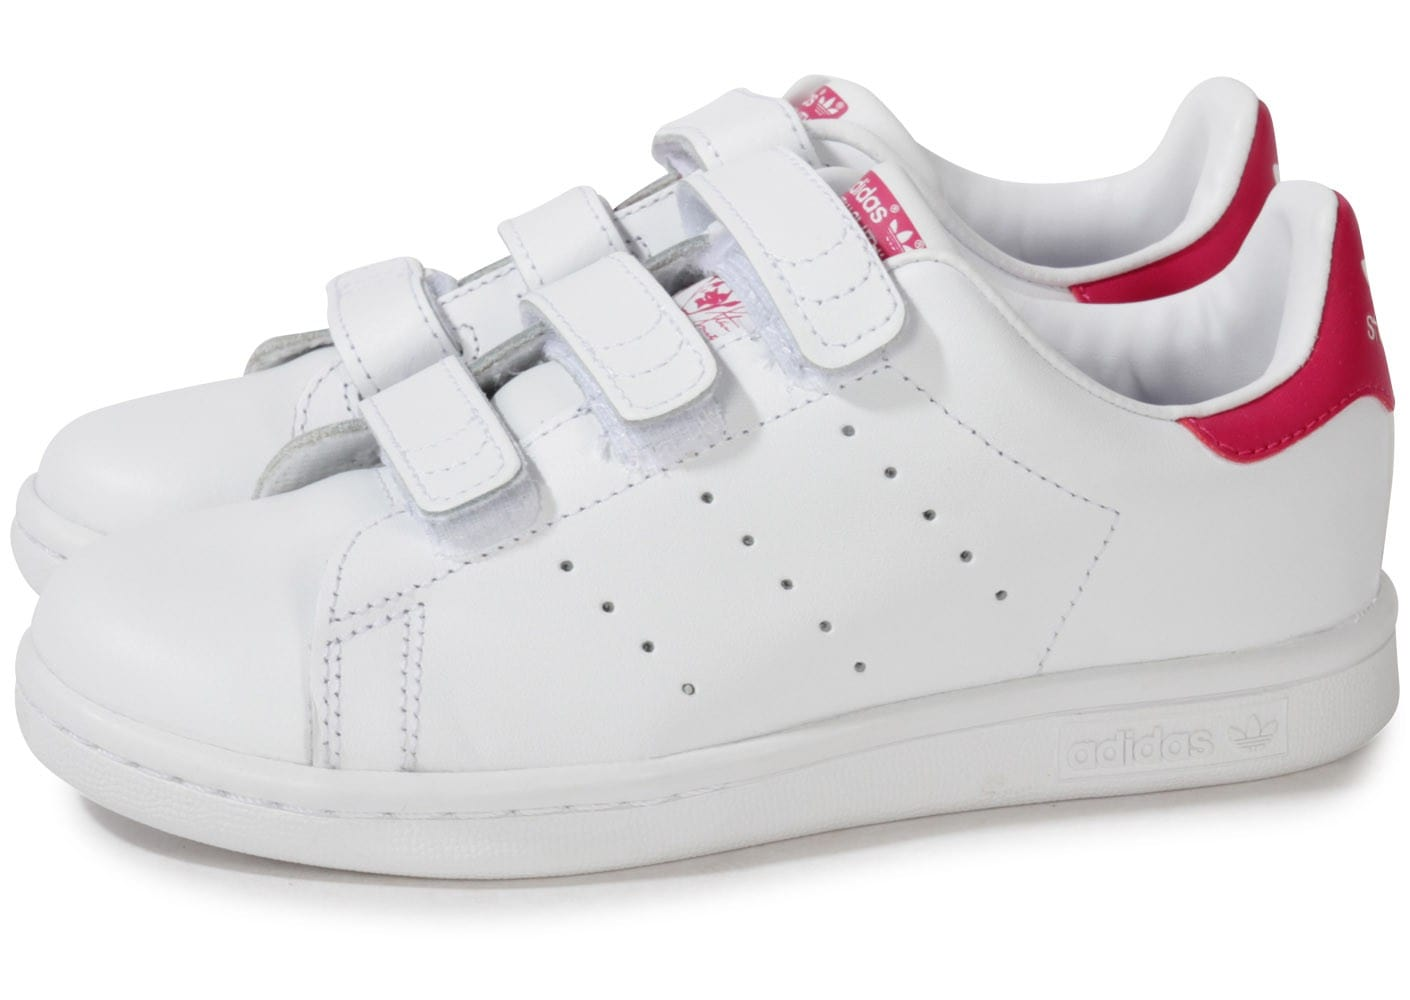 adidas stan smith scratch rose et blanche enfant chaussures adidas chausport. Black Bedroom Furniture Sets. Home Design Ideas